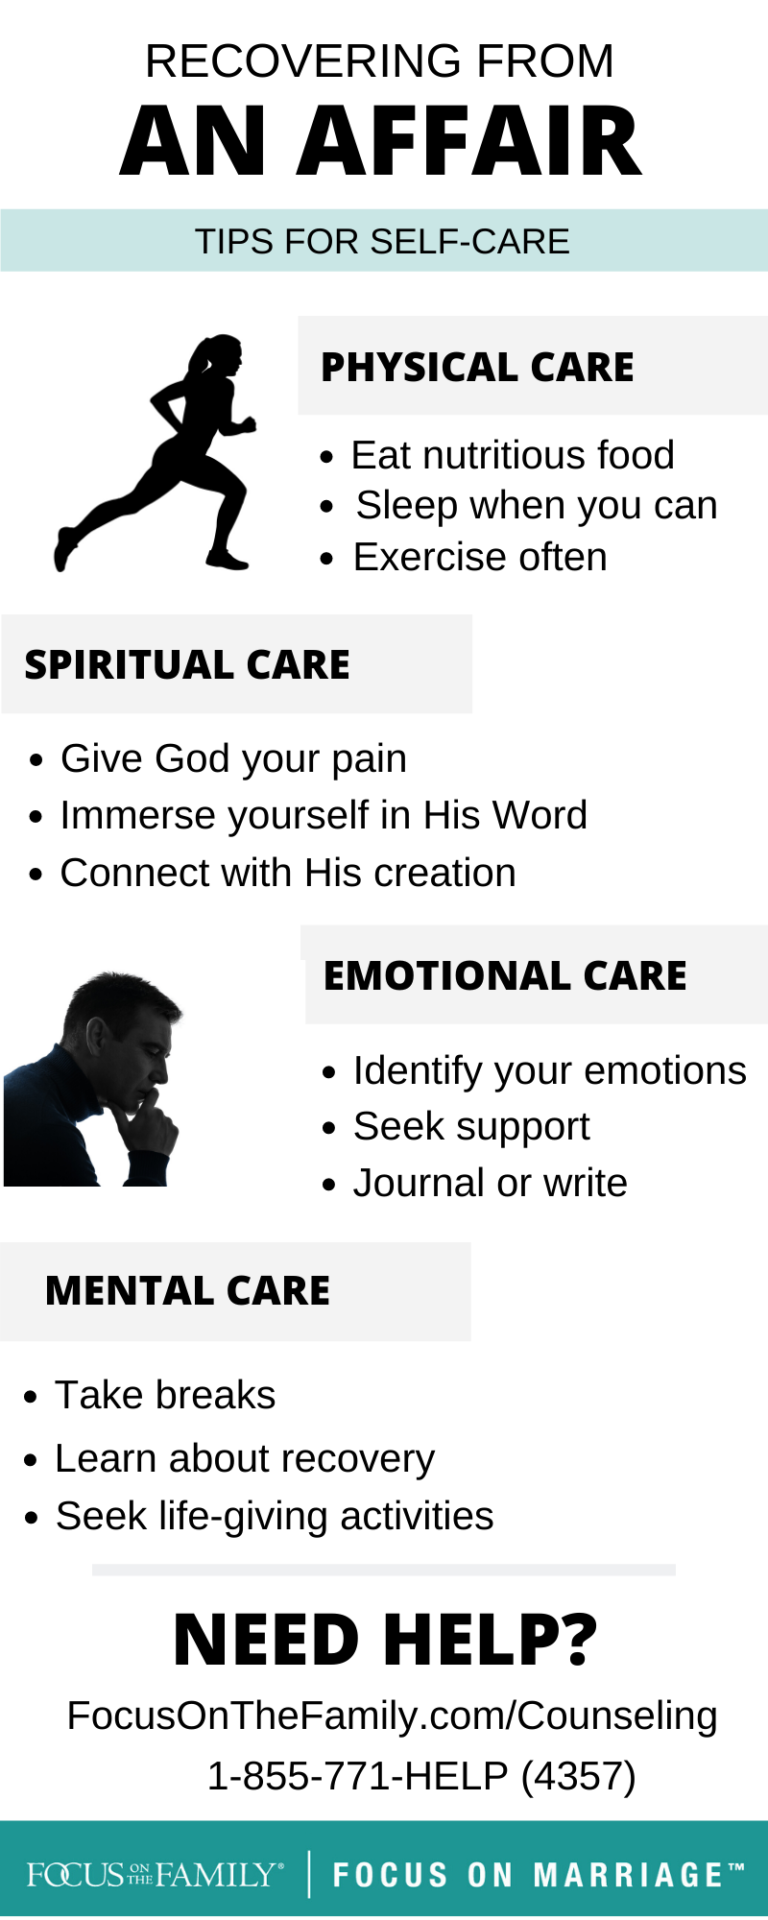 self-care when recovering from an affair